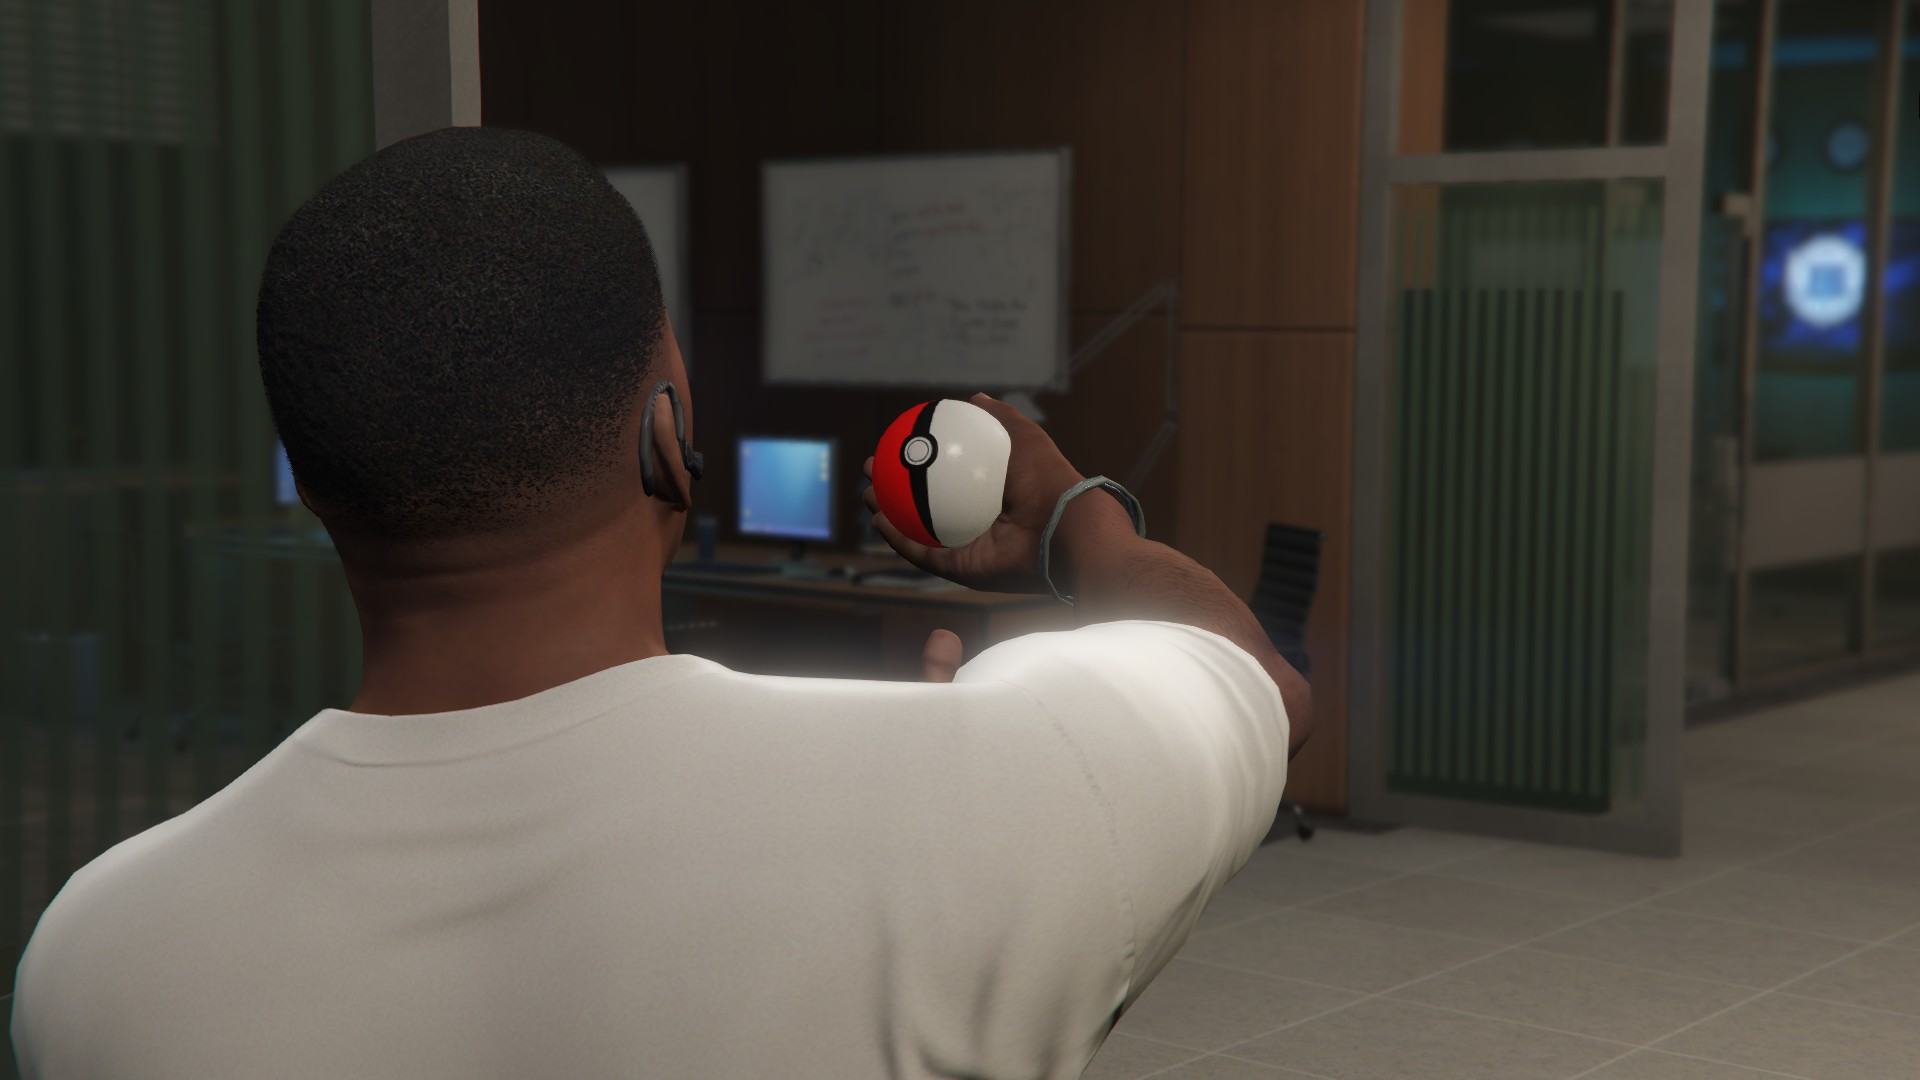 The Pokeball Mod для GTA V - Скриншот 2